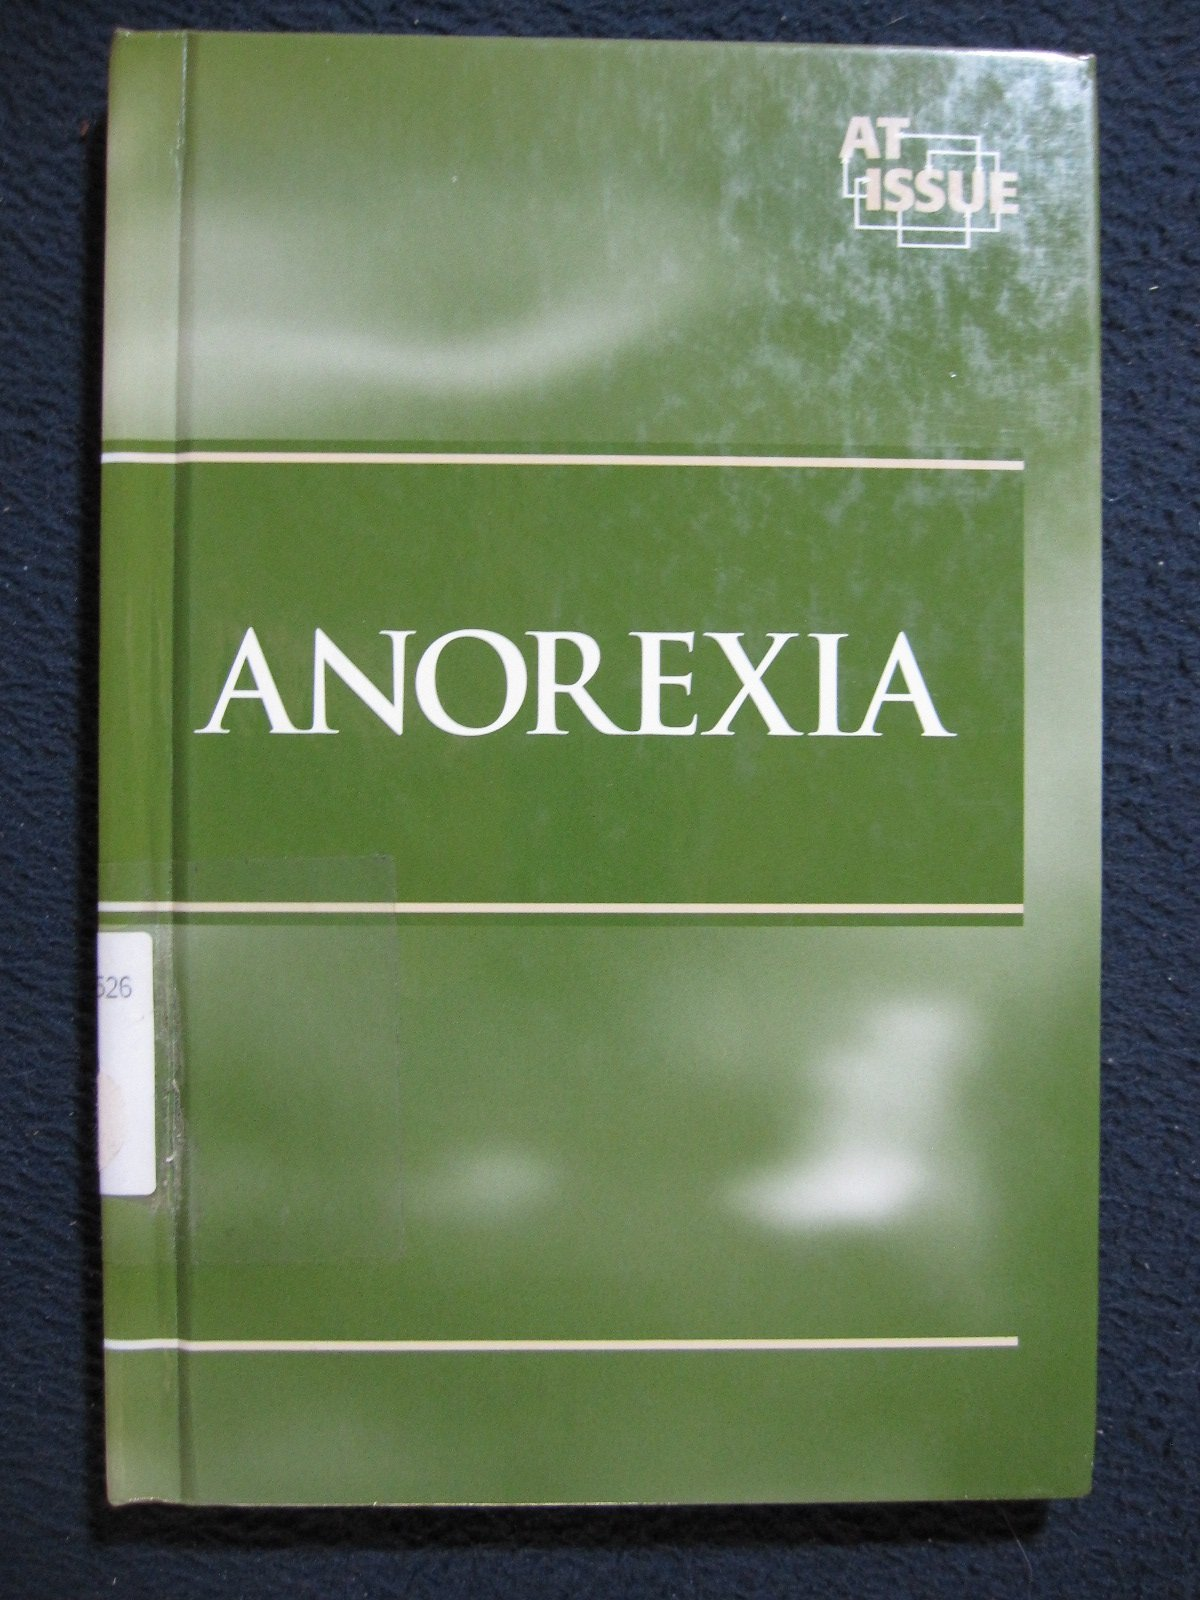 At Issue Series - Anorexia (hardcover edition) pdf